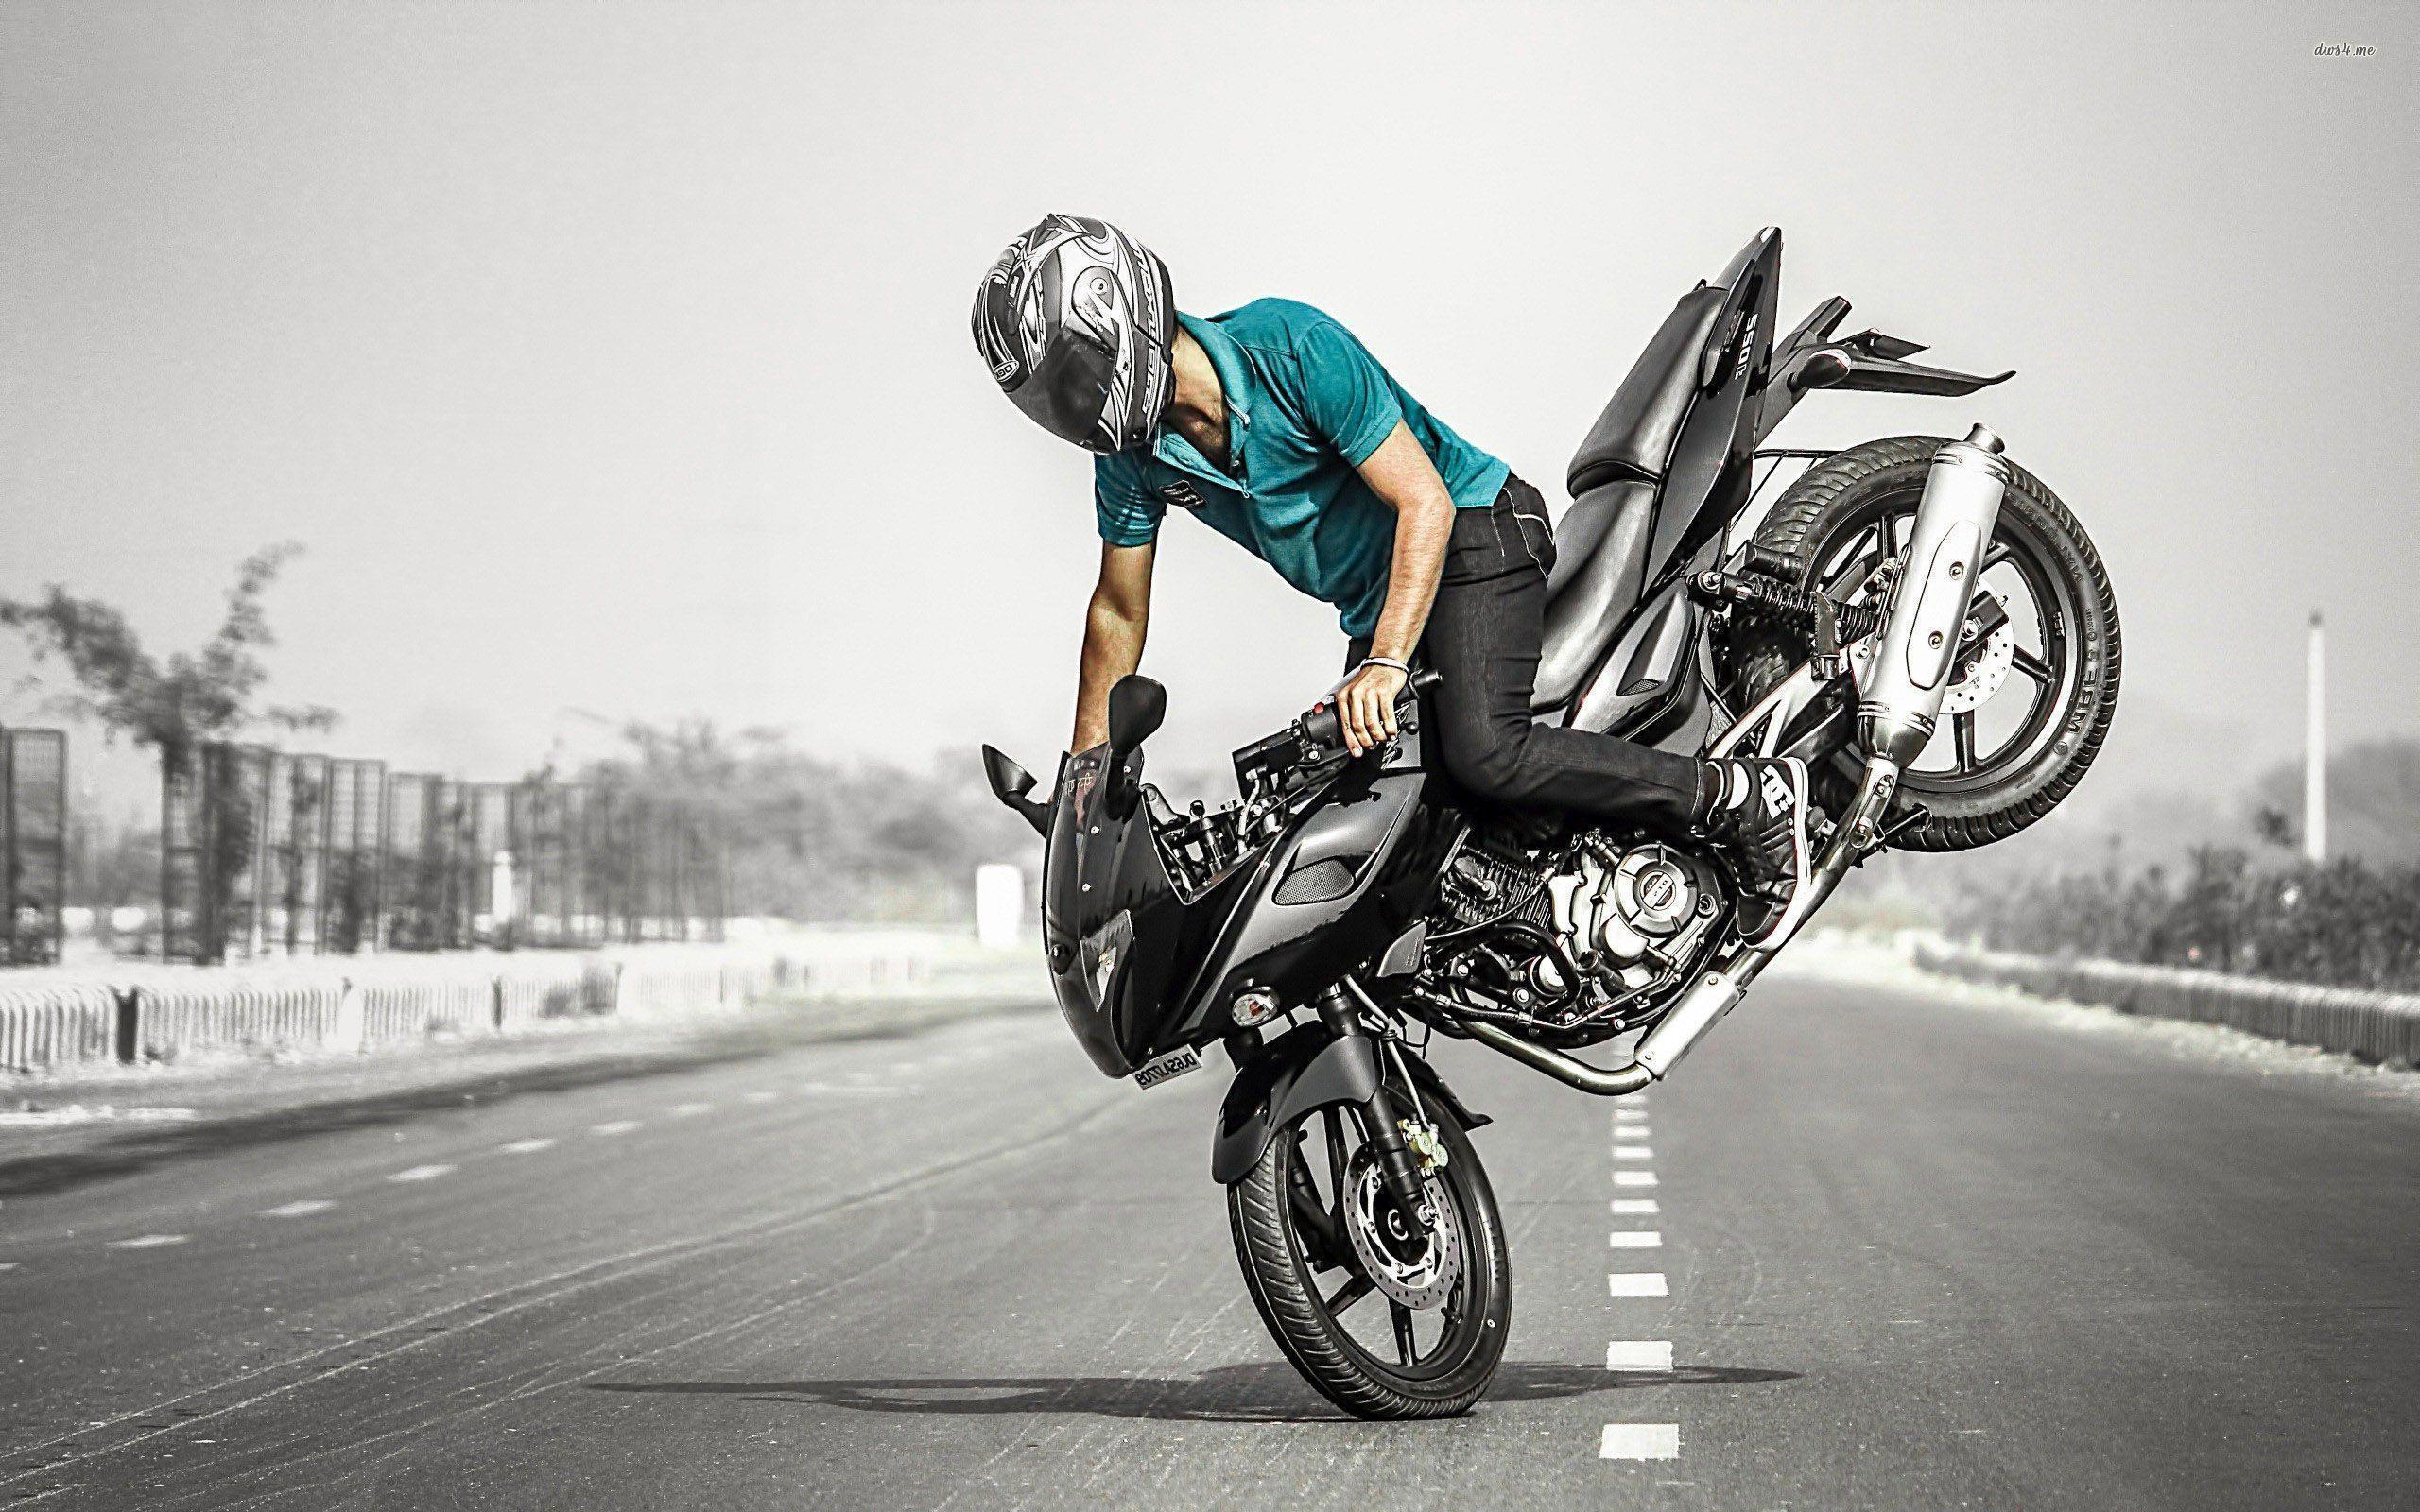 Blue Bike Stunt Hd Wallpaper: Stunt Bike Wallpapers